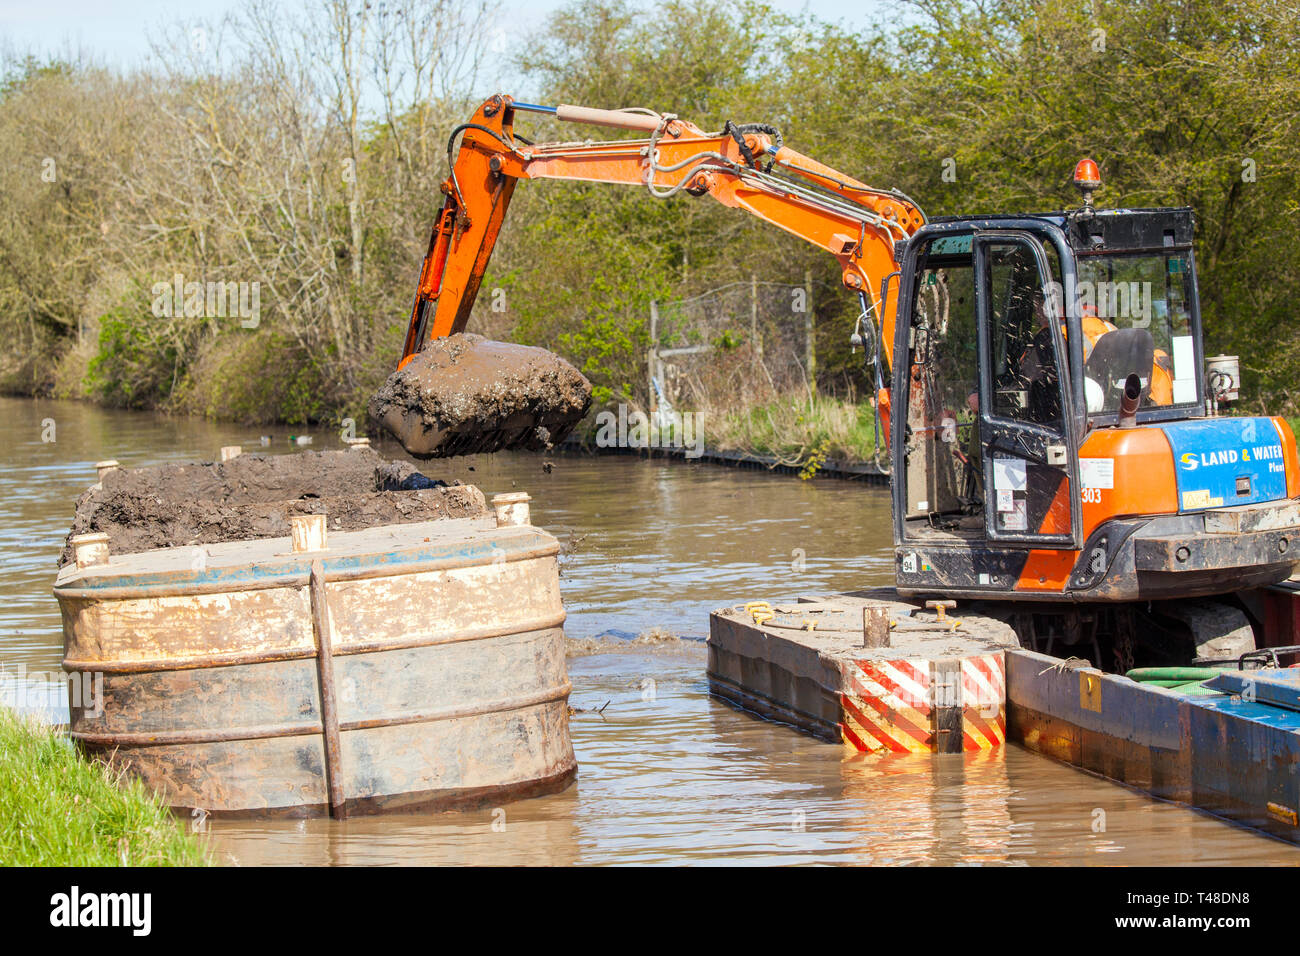 Maintenance repair work and dredging of the Macclesfield canal  being carried out at Buglawton Cheshire England UK Stock Photo